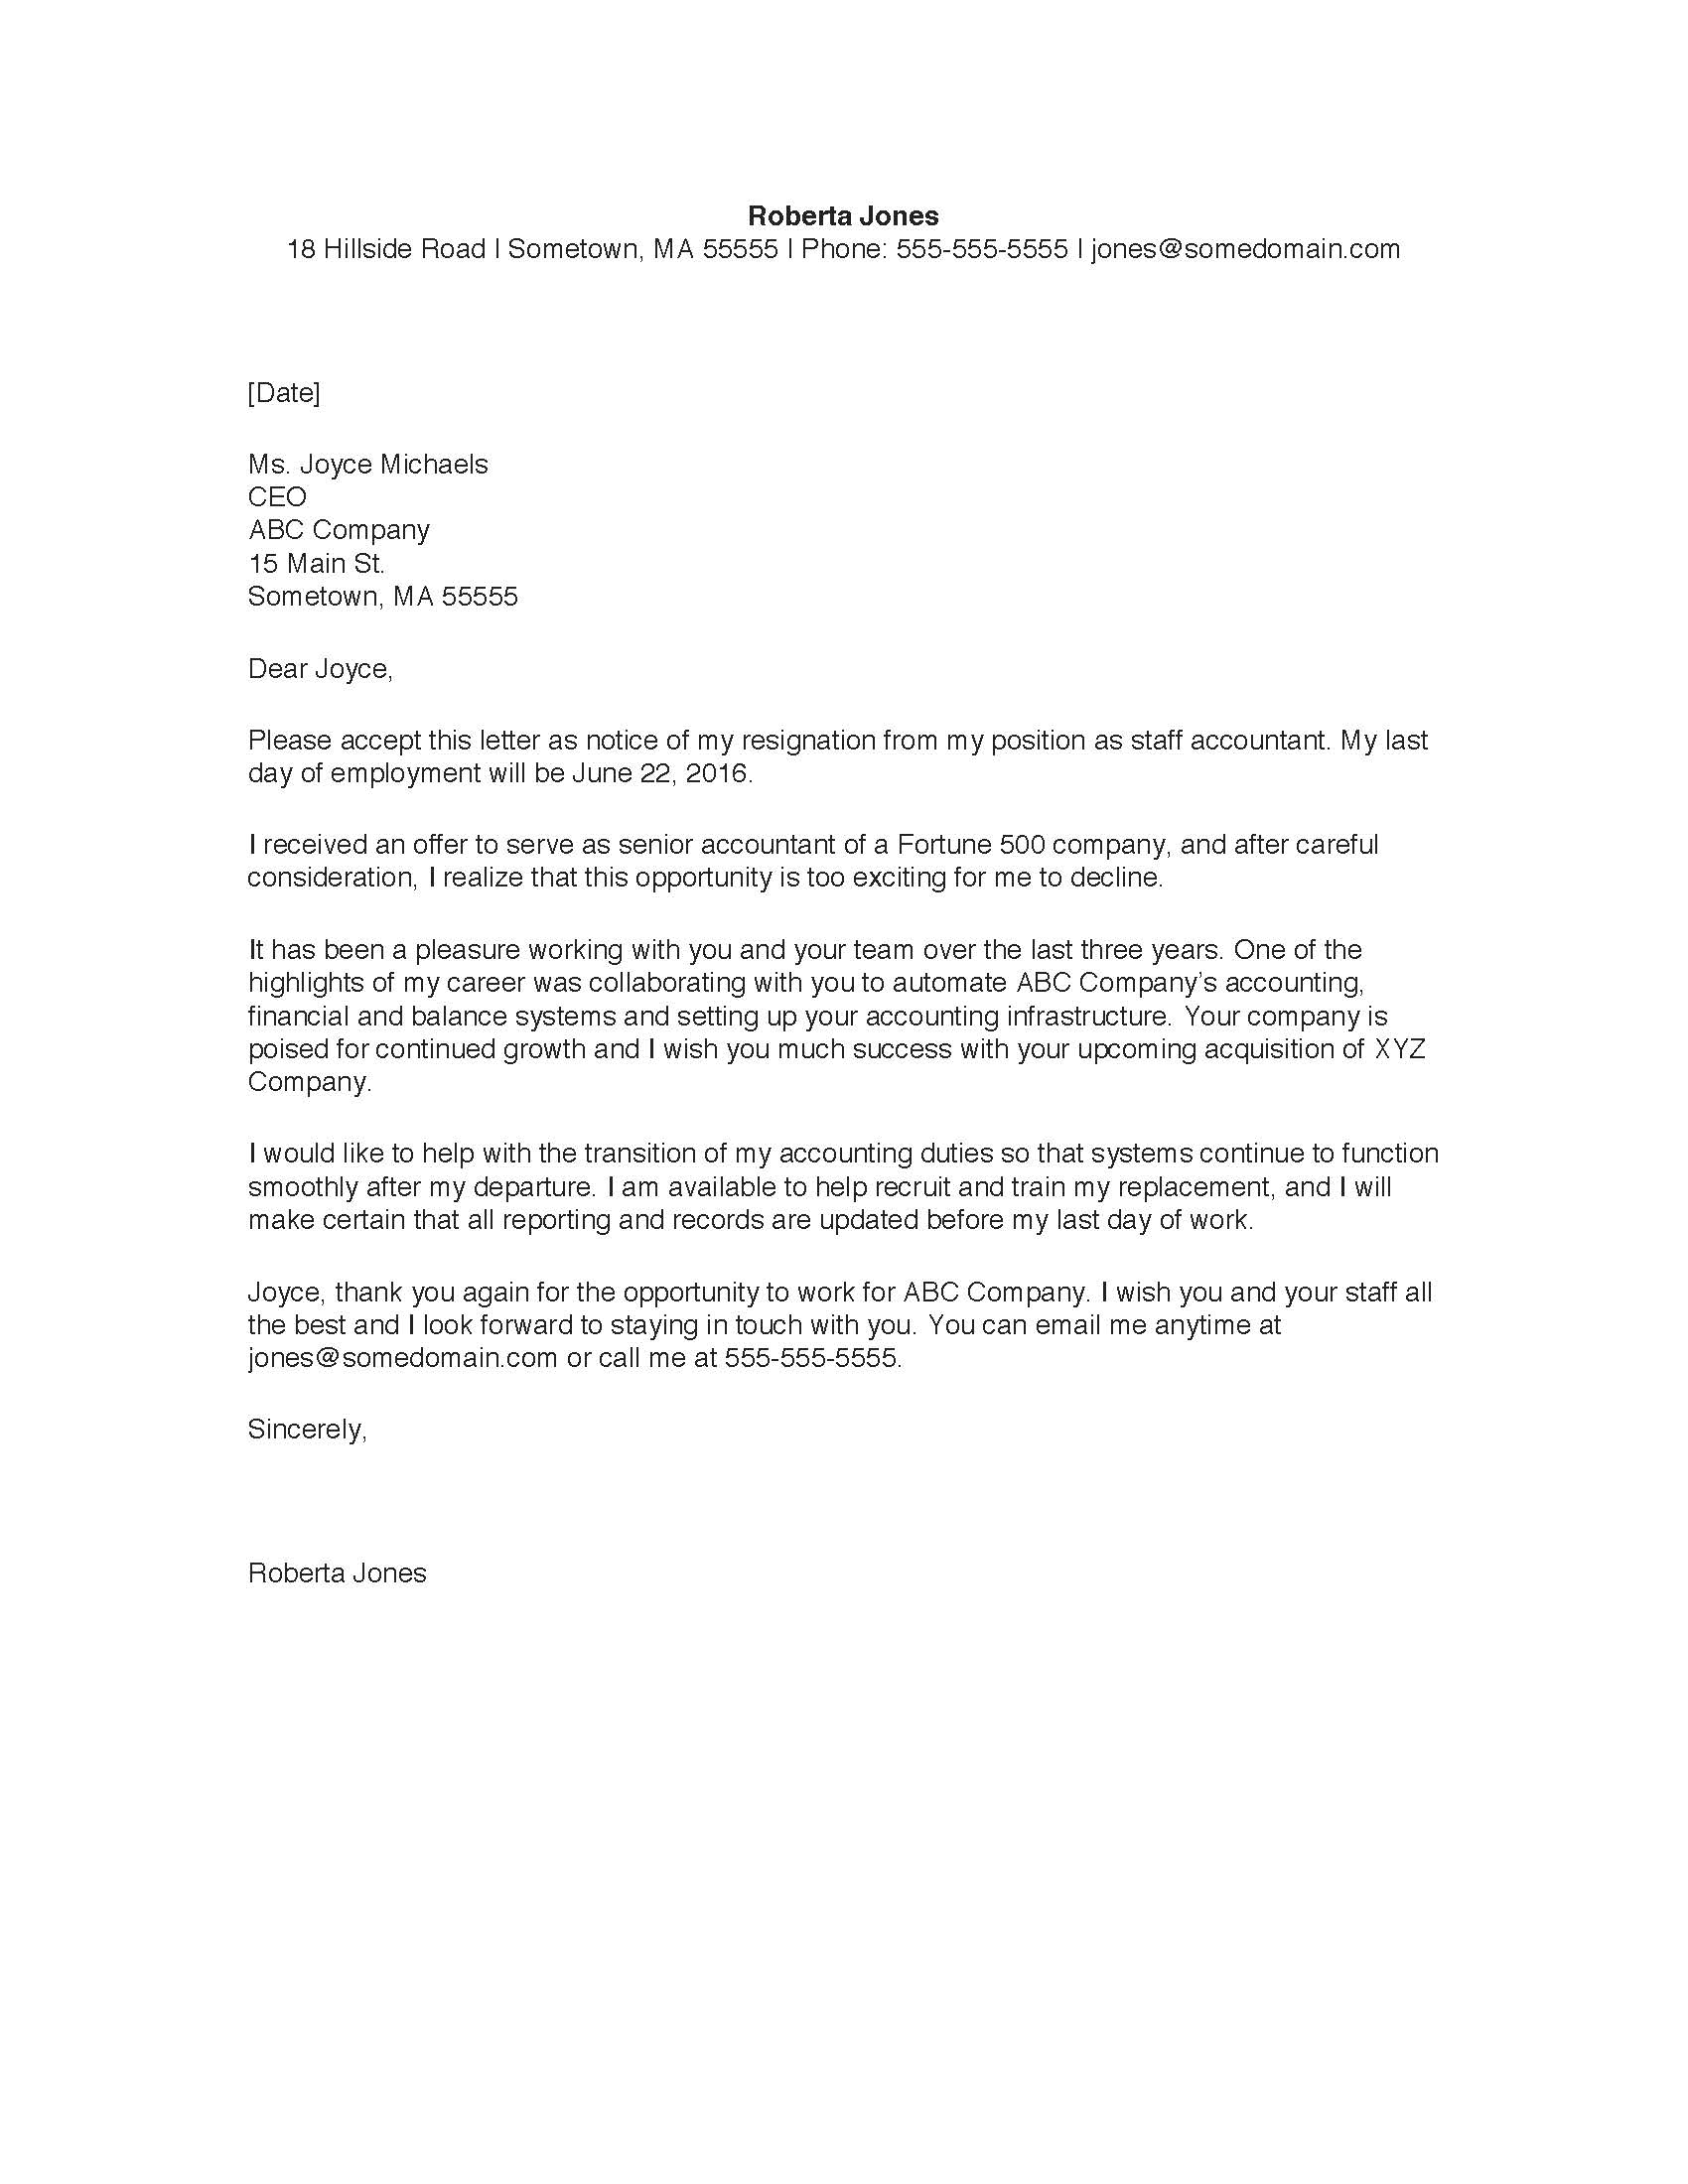 Resignation notice templates morenpulsar resignation notice templates expocarfo